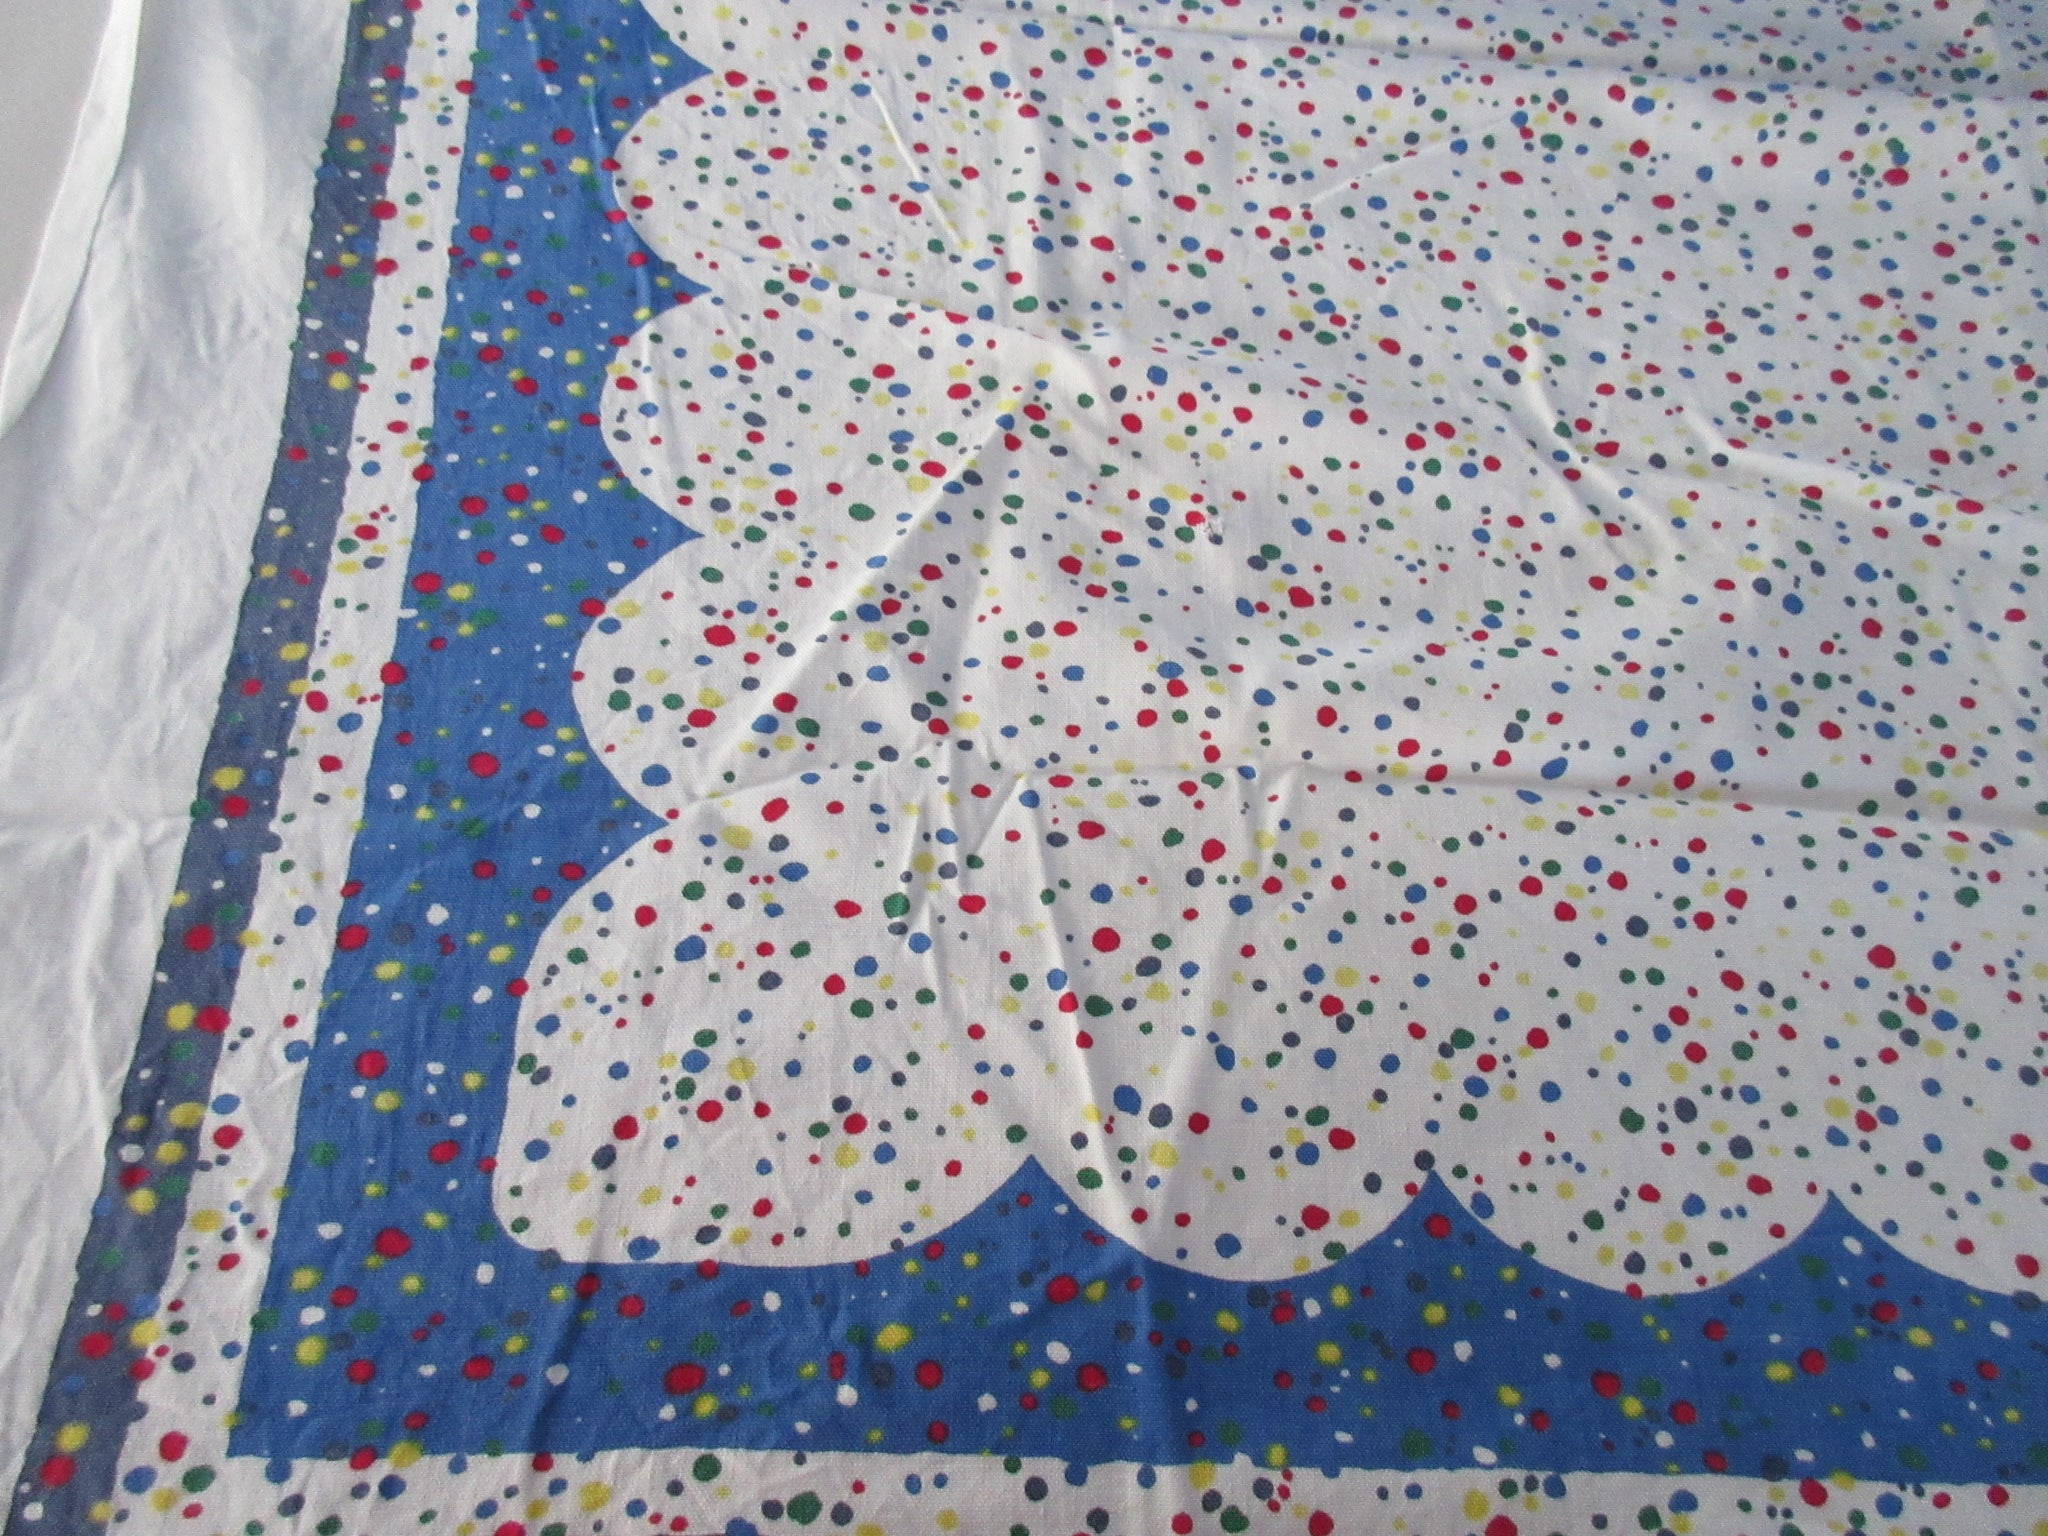 Shabby Primary Confetti on Blue Novelty CUTTER Vintage Printed Tablecloth (53 X 44)